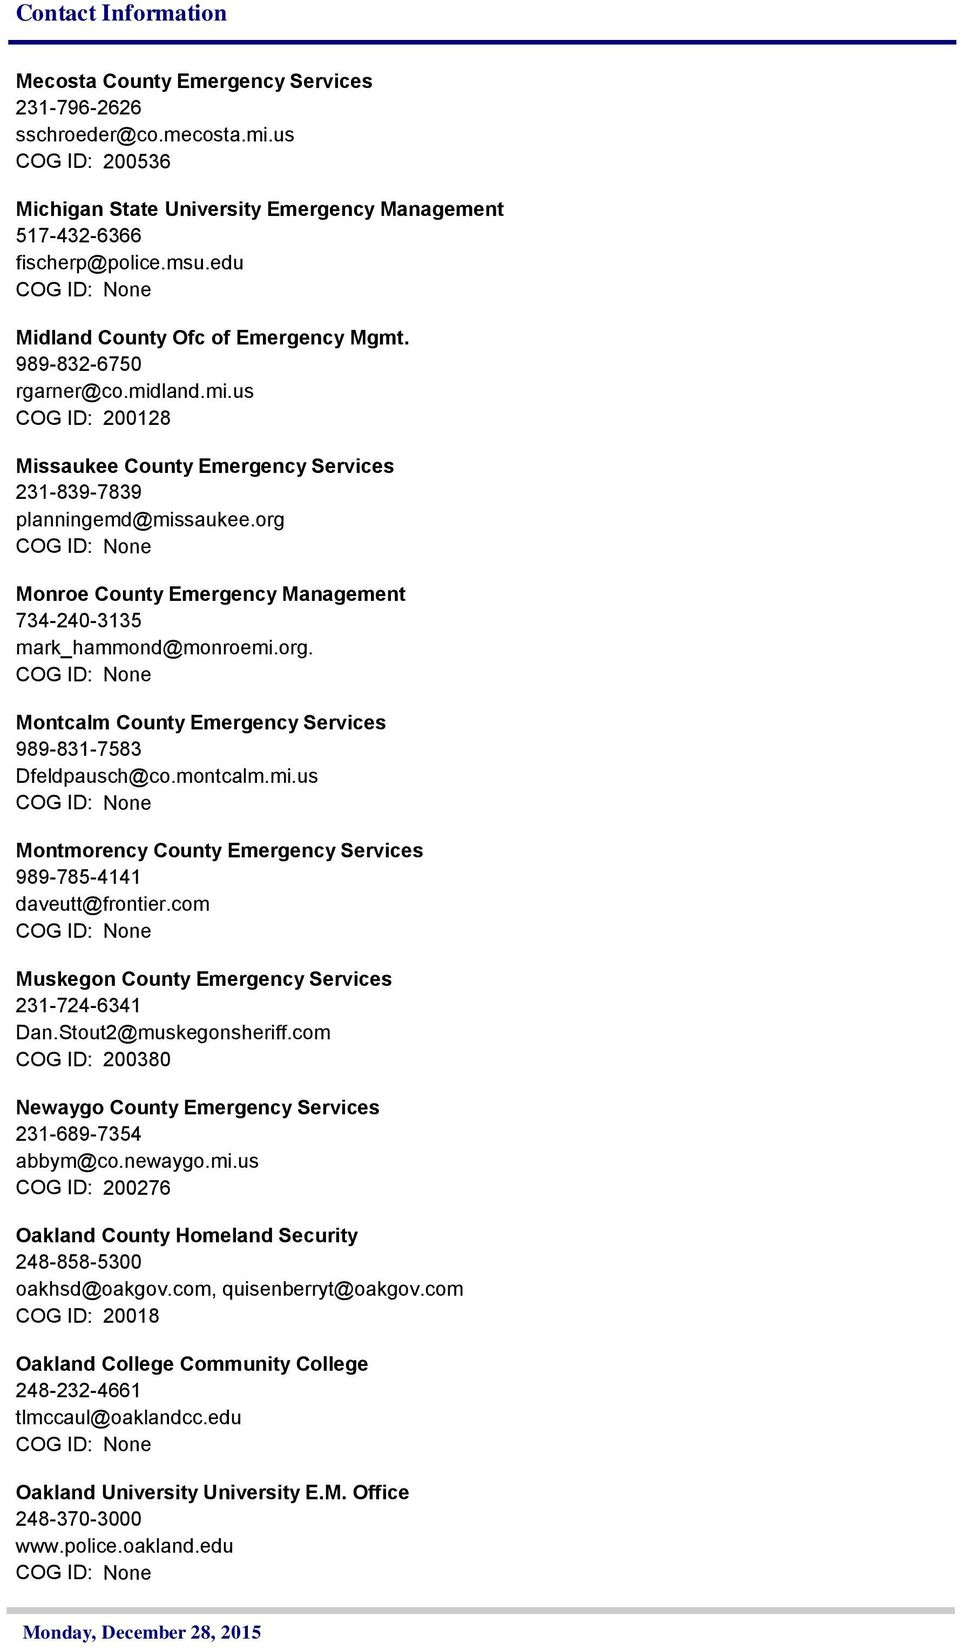 org Monroe County Emergency Management 734-240-3135 mark_hammond@monroemi.org. Montcalm County Emergency Services 989-831-7583 Dfeldpausch@co.montcalm.mi.us Montmorency County Emergency Services 989-785-4141 daveutt@frontier.